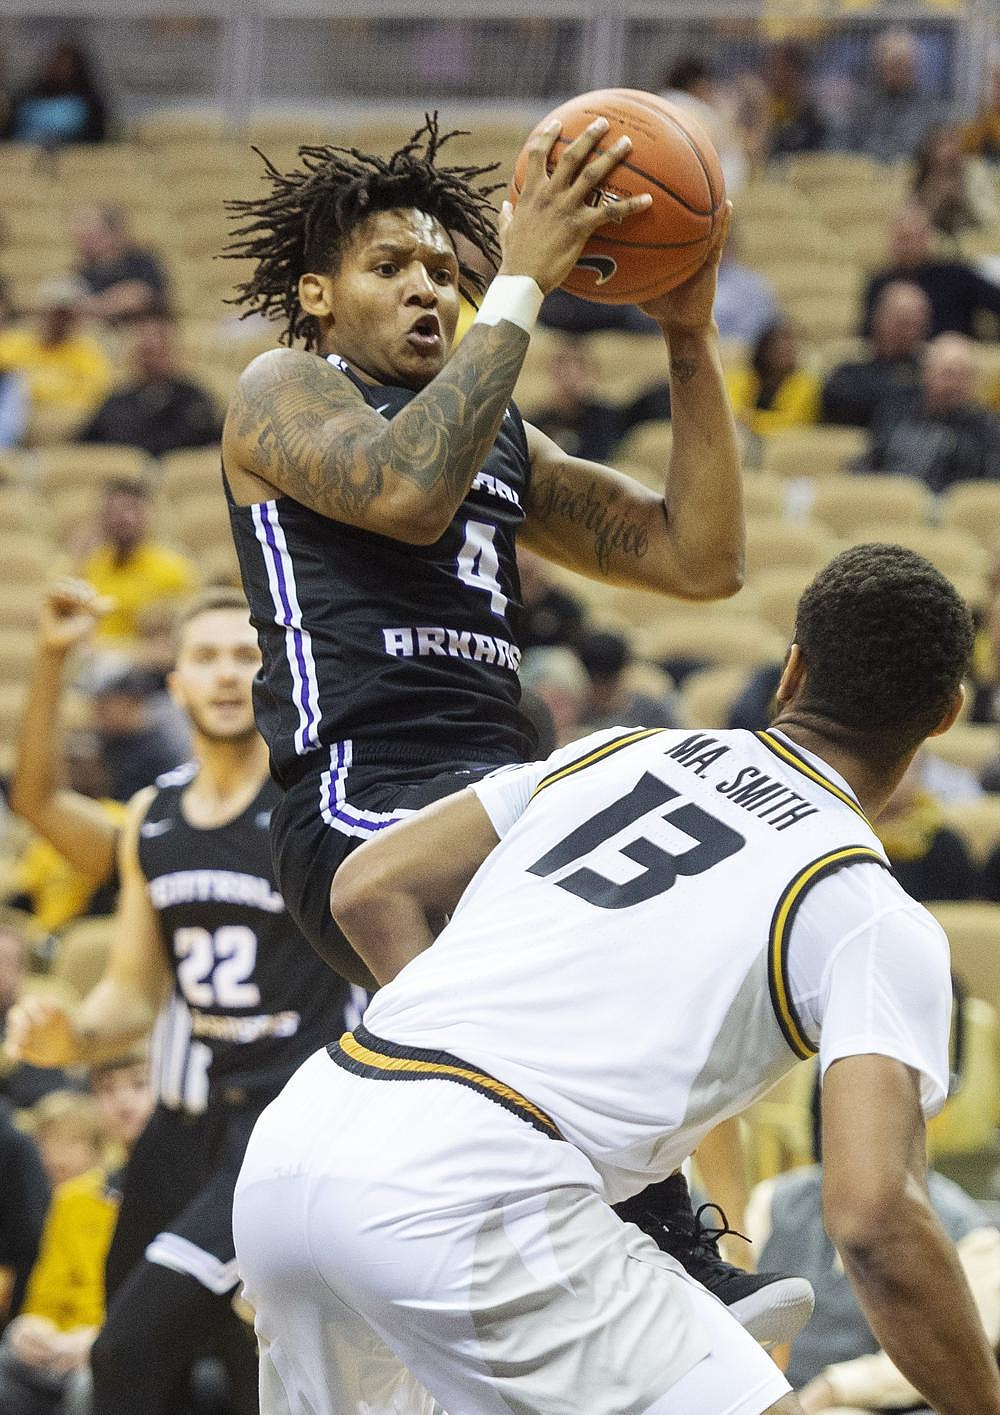 Khaleem Bennett (shown, 4), back with the University of Central Arkansas after having to redshirt in 2019-20 following offseason surgery for a broken foot, had 21 points to help the Bears defeat New Orleans.  (AP/L.G. Patterson)